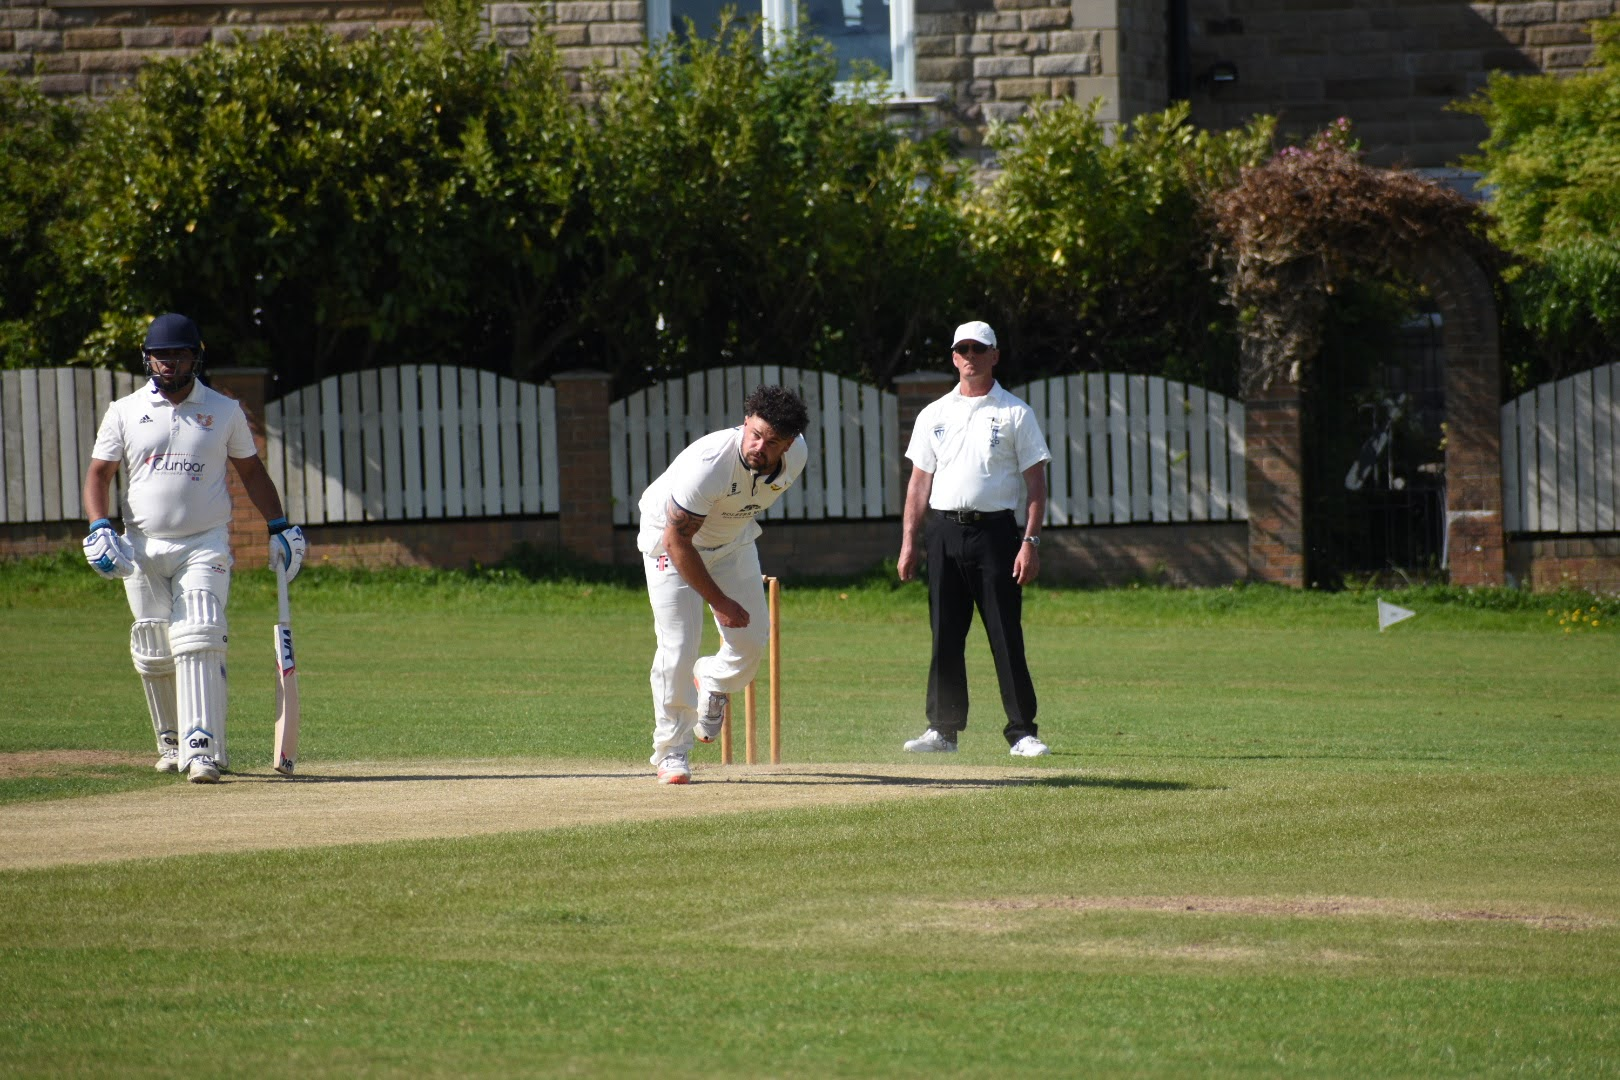 Hinchliffe Leads Golcar In Last Day Triumph - Premiership Matchday 26 Review